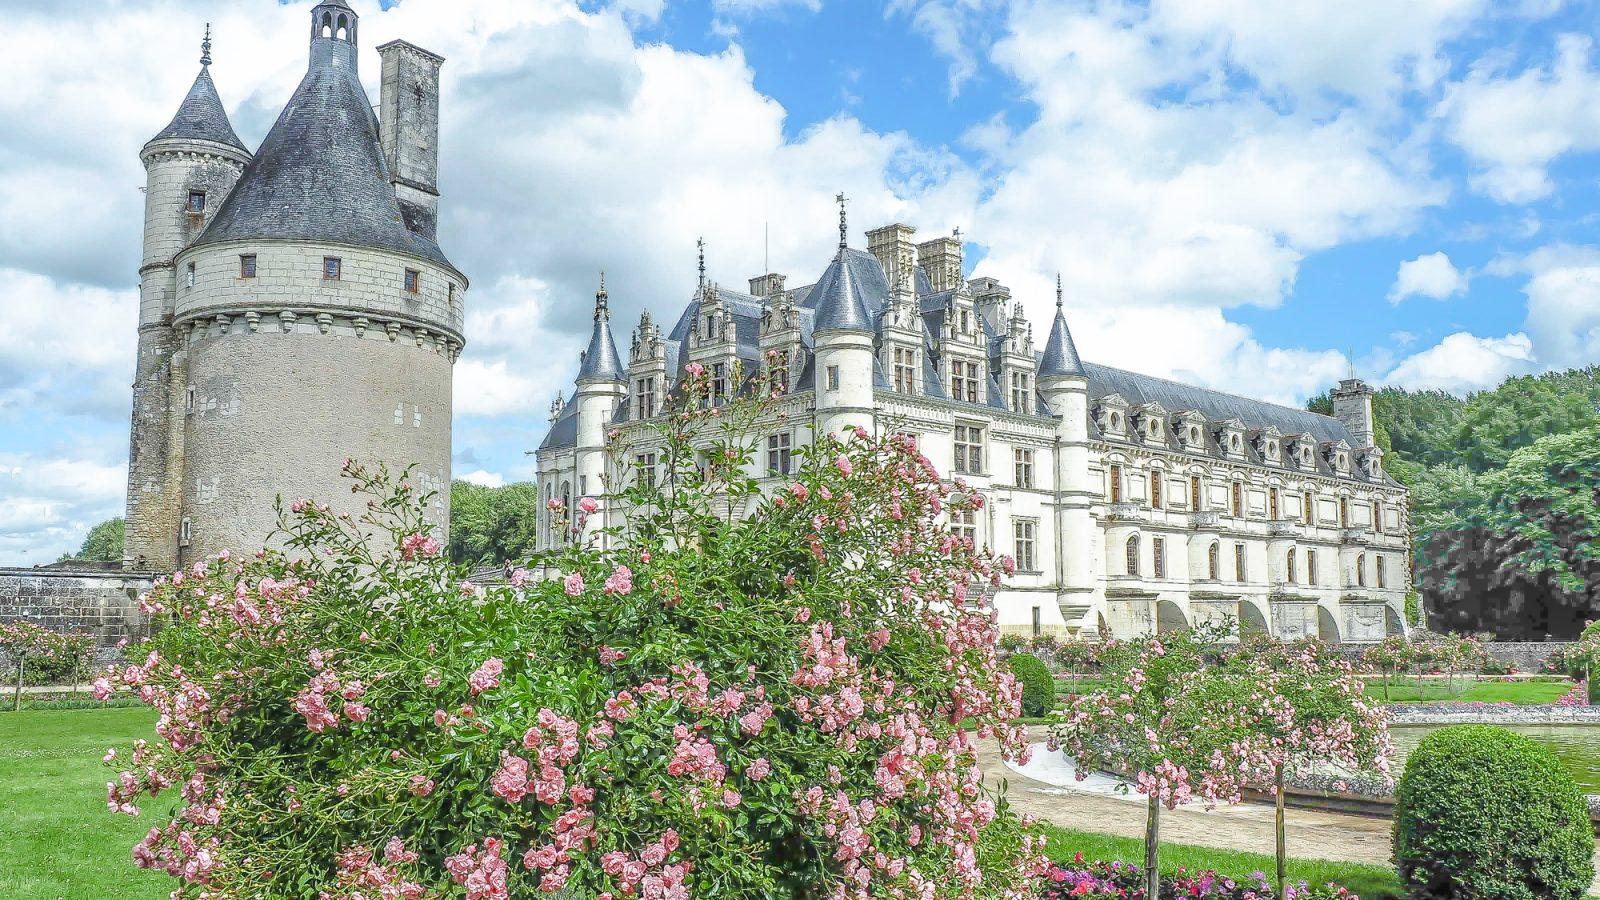 7 France-tastic Things to Do in the Loire Valley   wine tasting, chateaux and castles, Leonardo da Vinci, Chartres, day trips, troglodyte caves, and more #france #loirevalley #traveltips #daytrips #paris #castles #winetasting